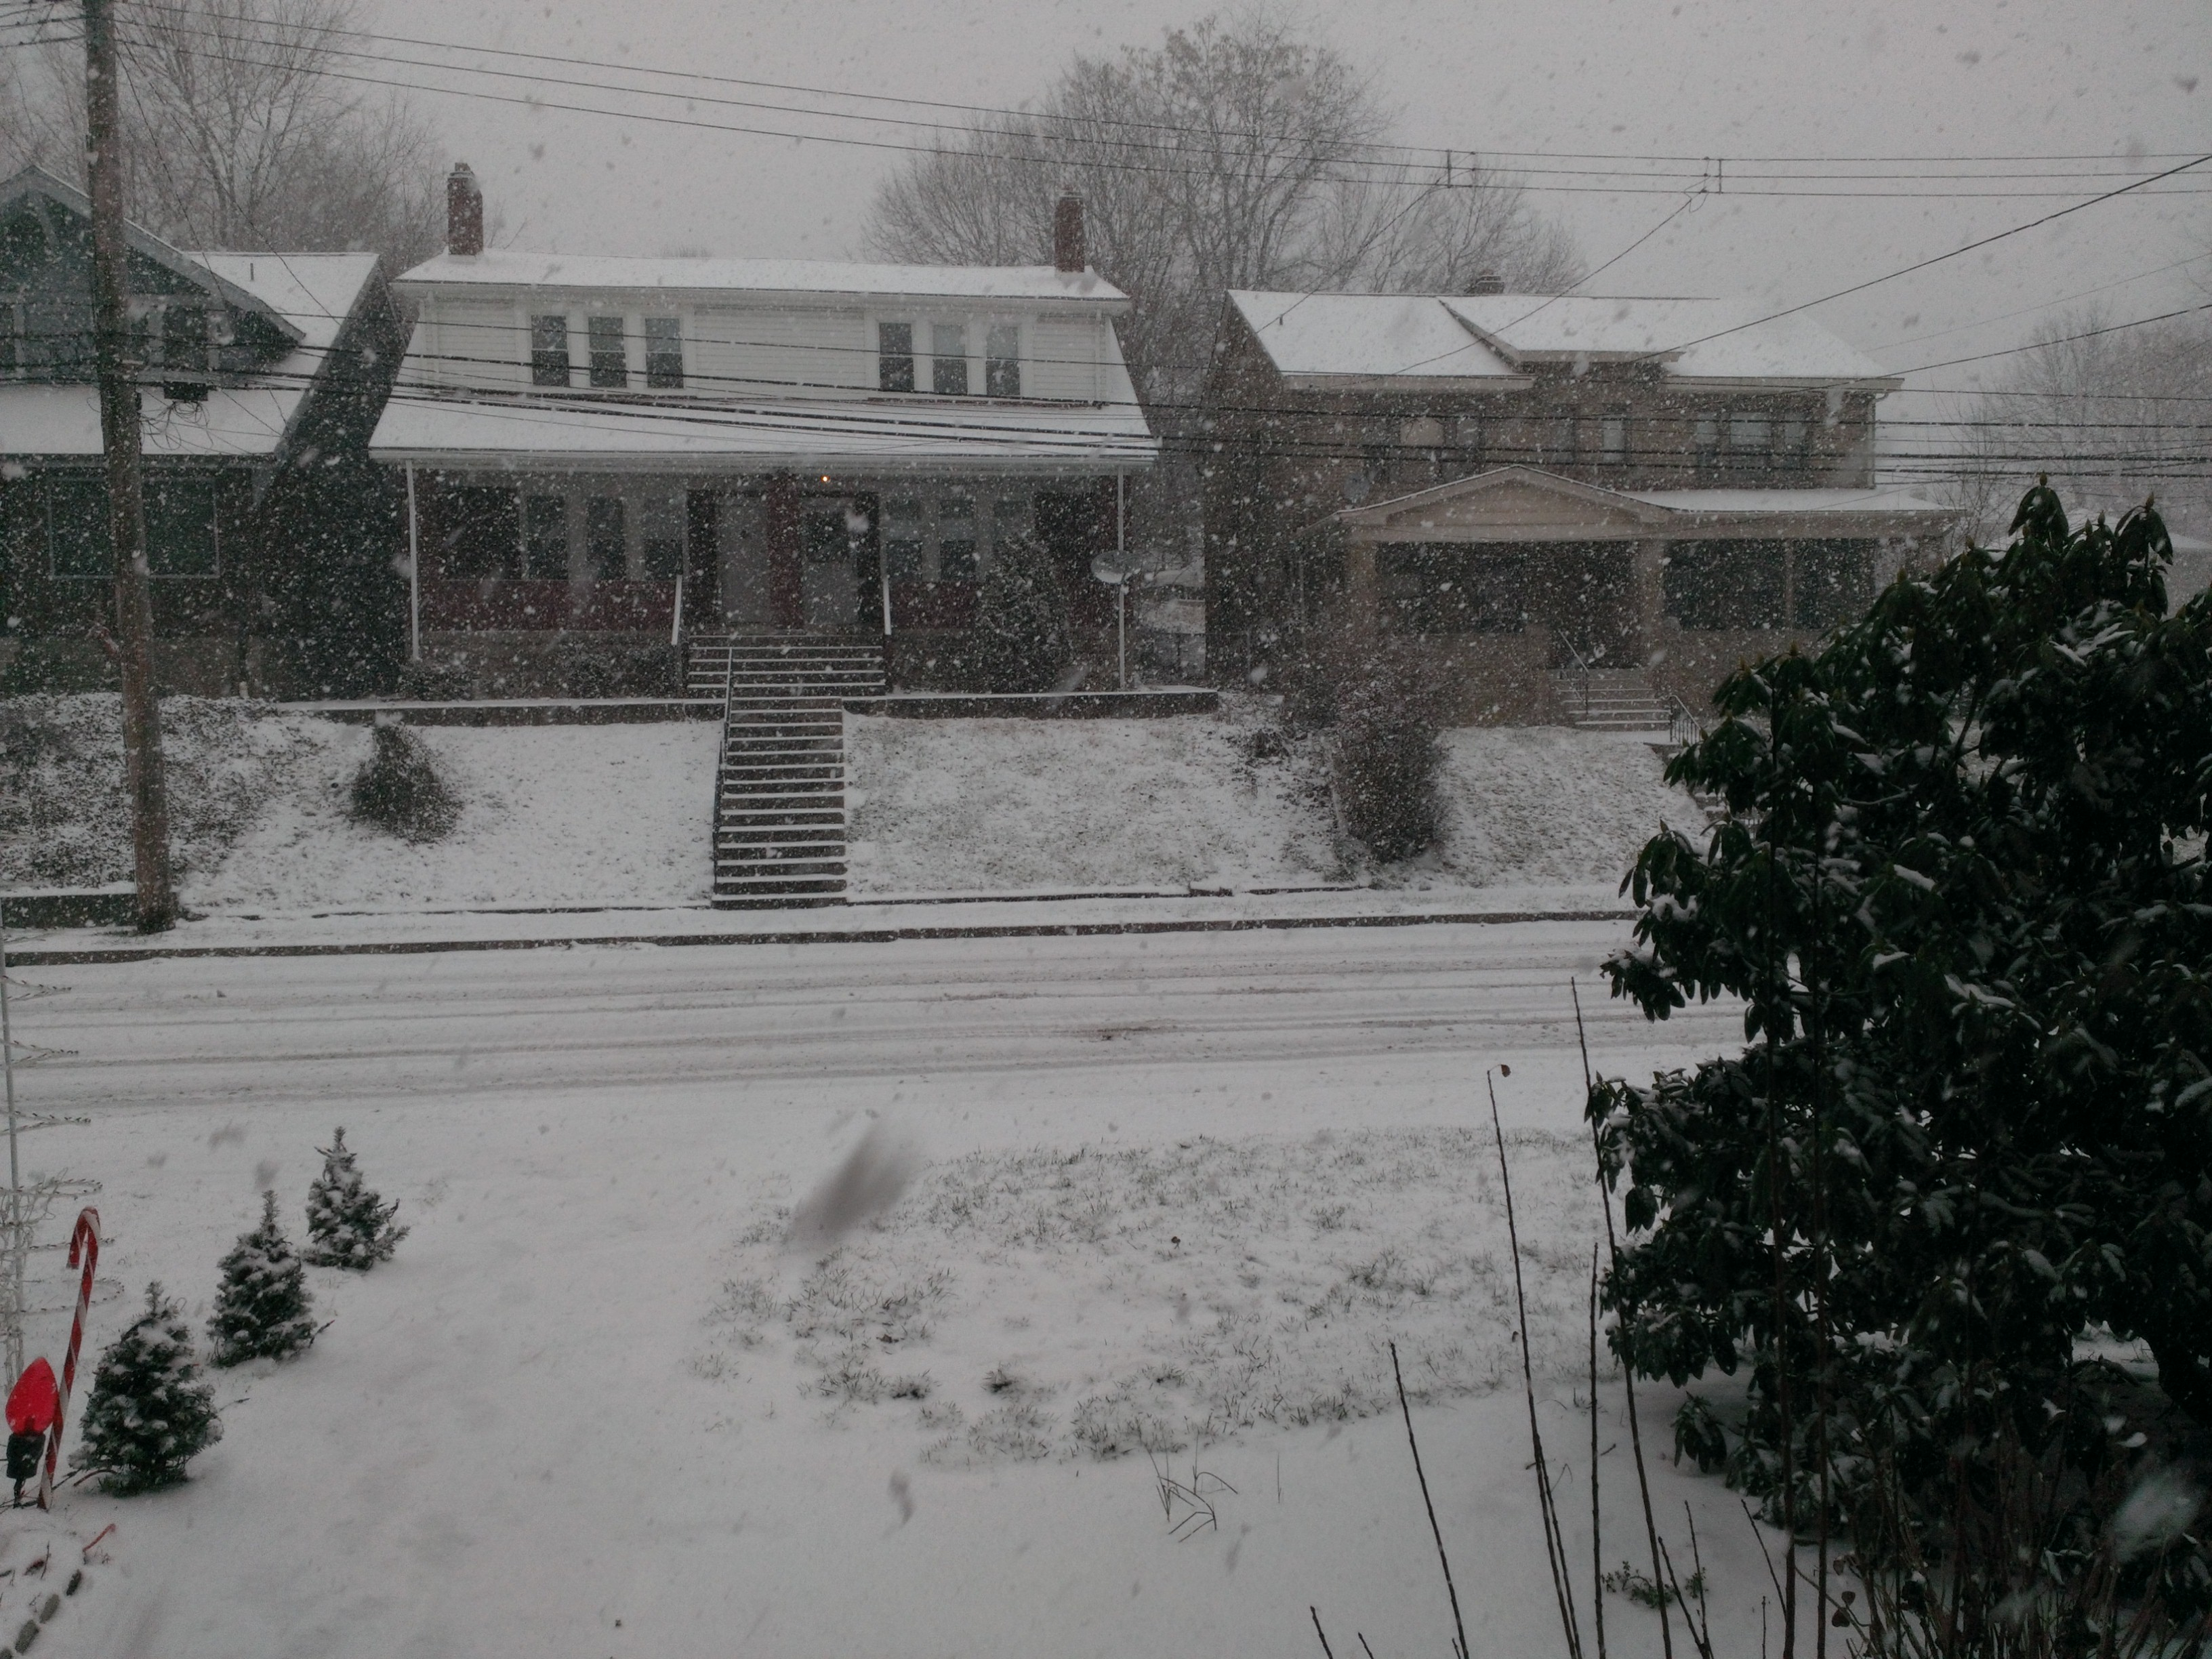 A cell phone photo from snow yesterday (12/26) - Note the neighbor's Christmas decorations.